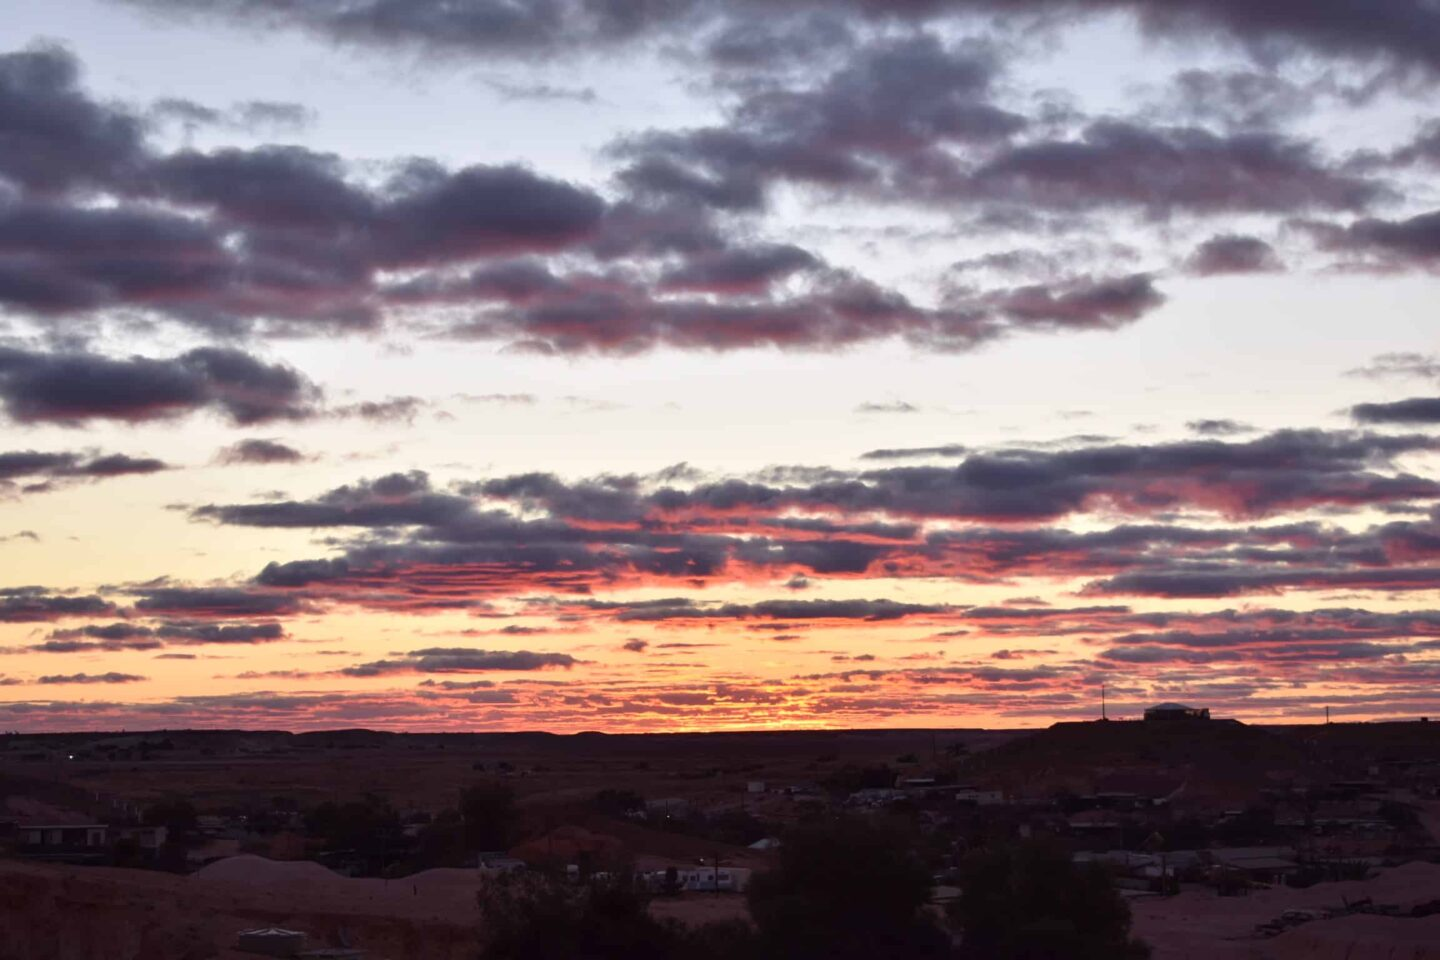 Coober Pedy, a town deep in the Australian Outback is a lot more than just opal mining. Here is my guide to the amazing things to do in a part of Australia that's unlike anywhere else.